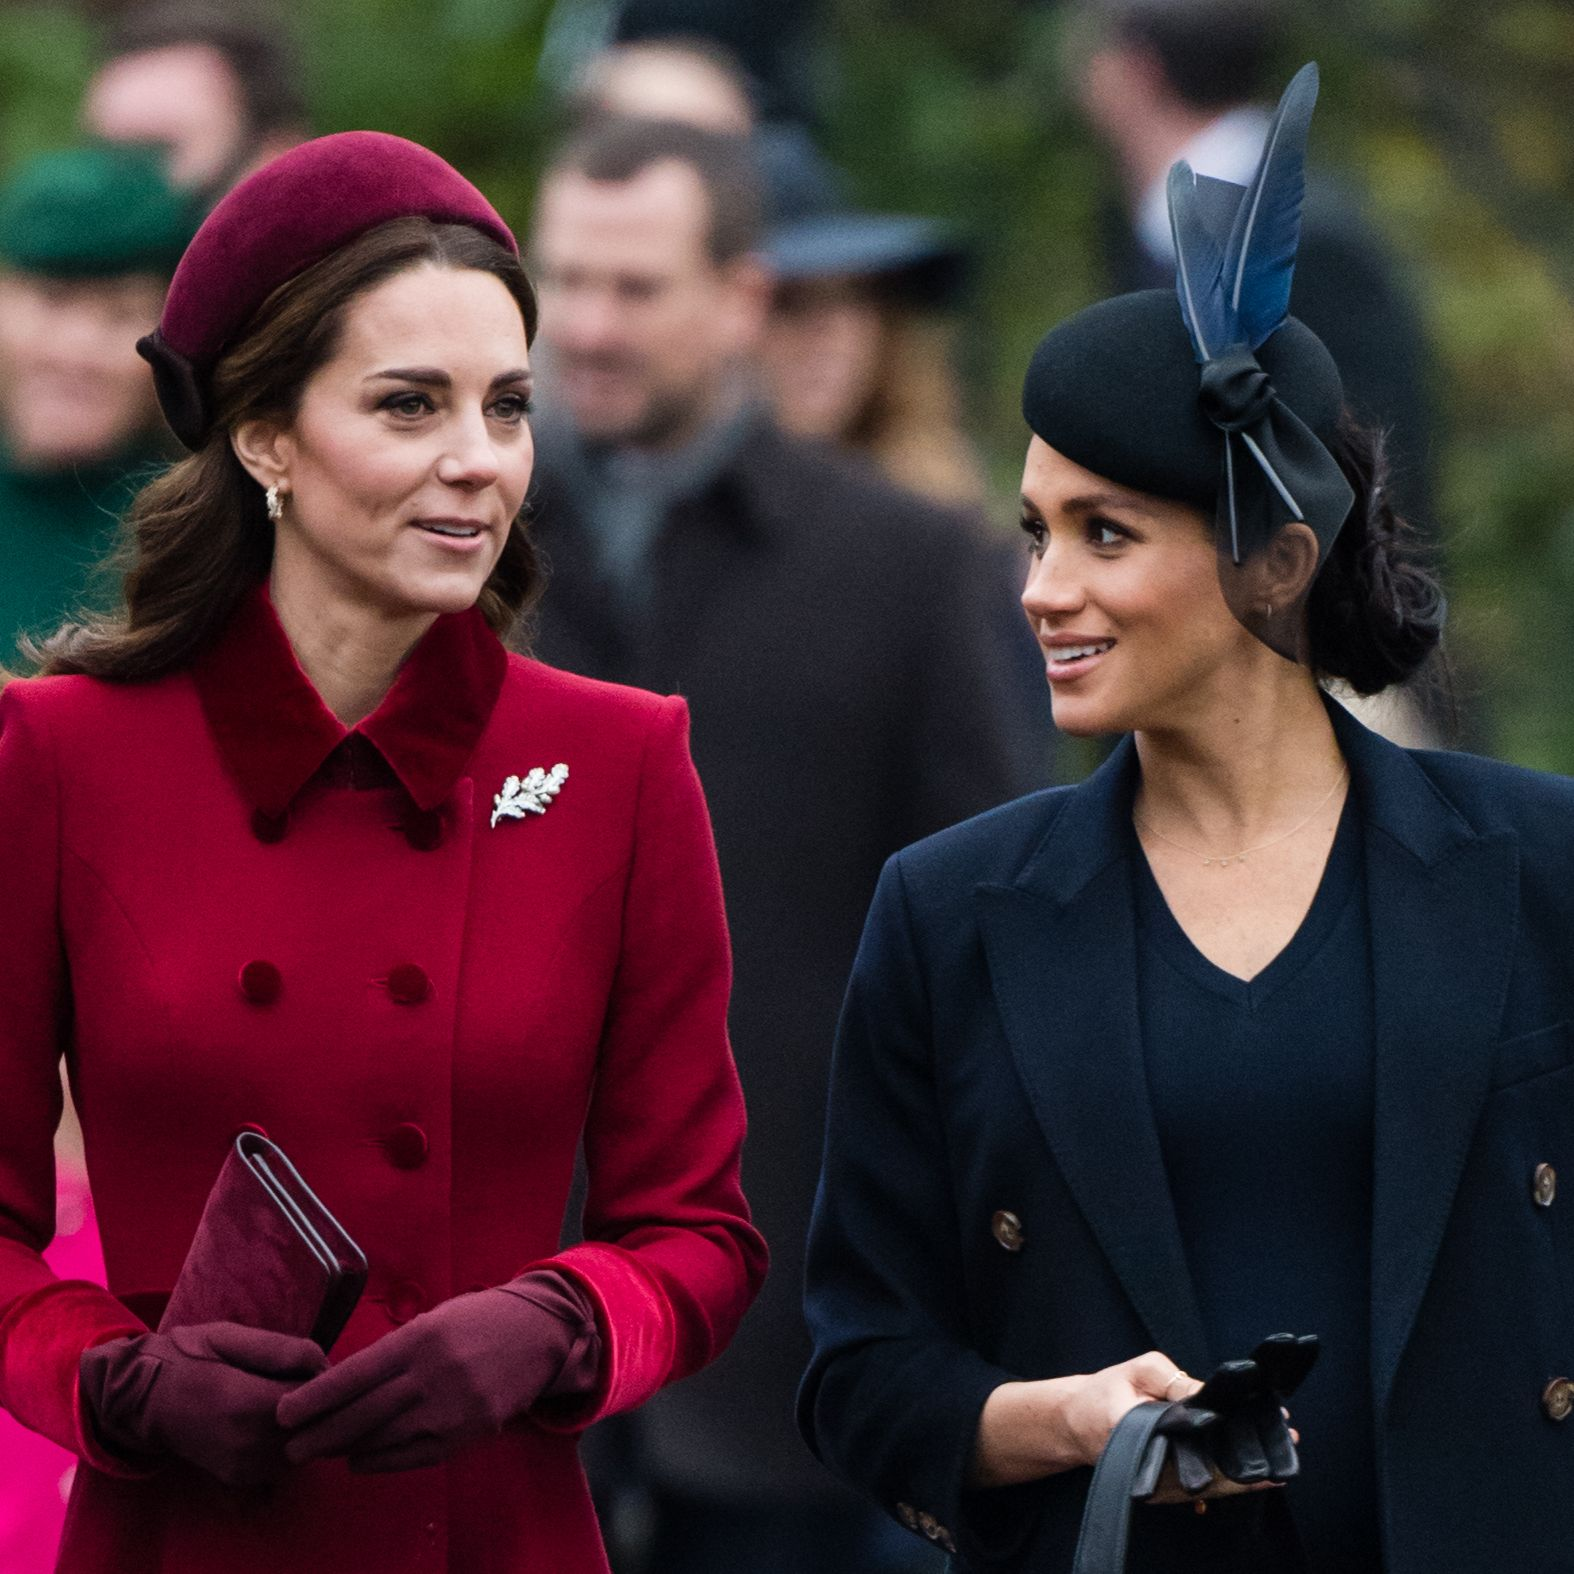 Meghan Markle and Kate Middleton Had a Super-Cute Sister-in-Law Moment at a Royal Event Today